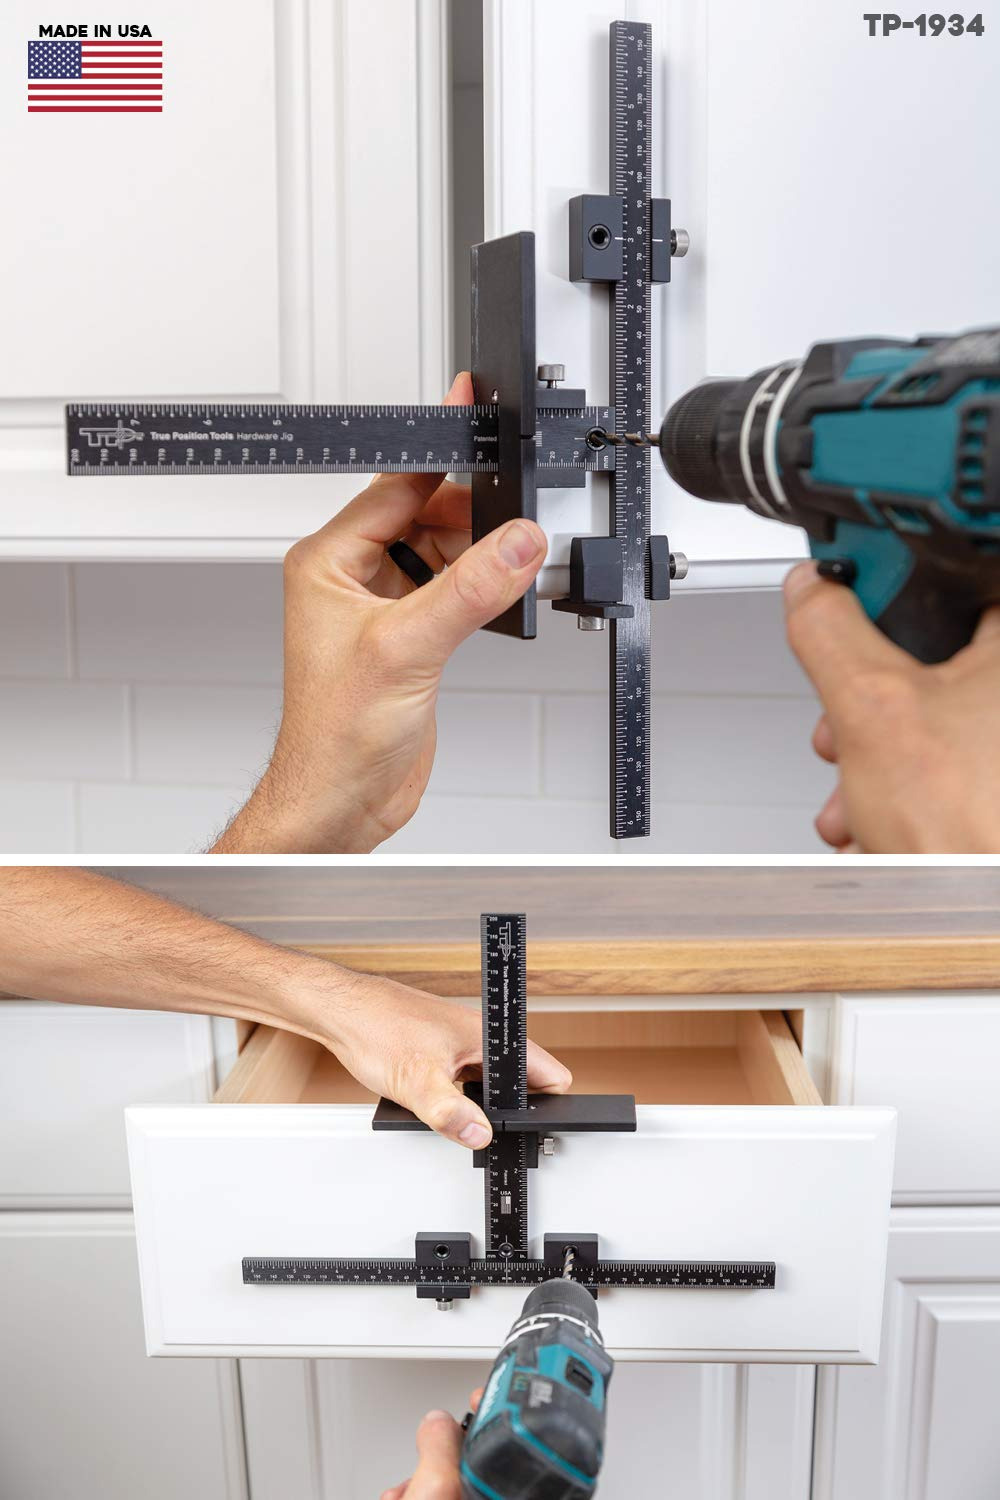 Cabinet Door Jig New Details About the original Cabinet Hardware Jig tool Drill Template Guide for Door and